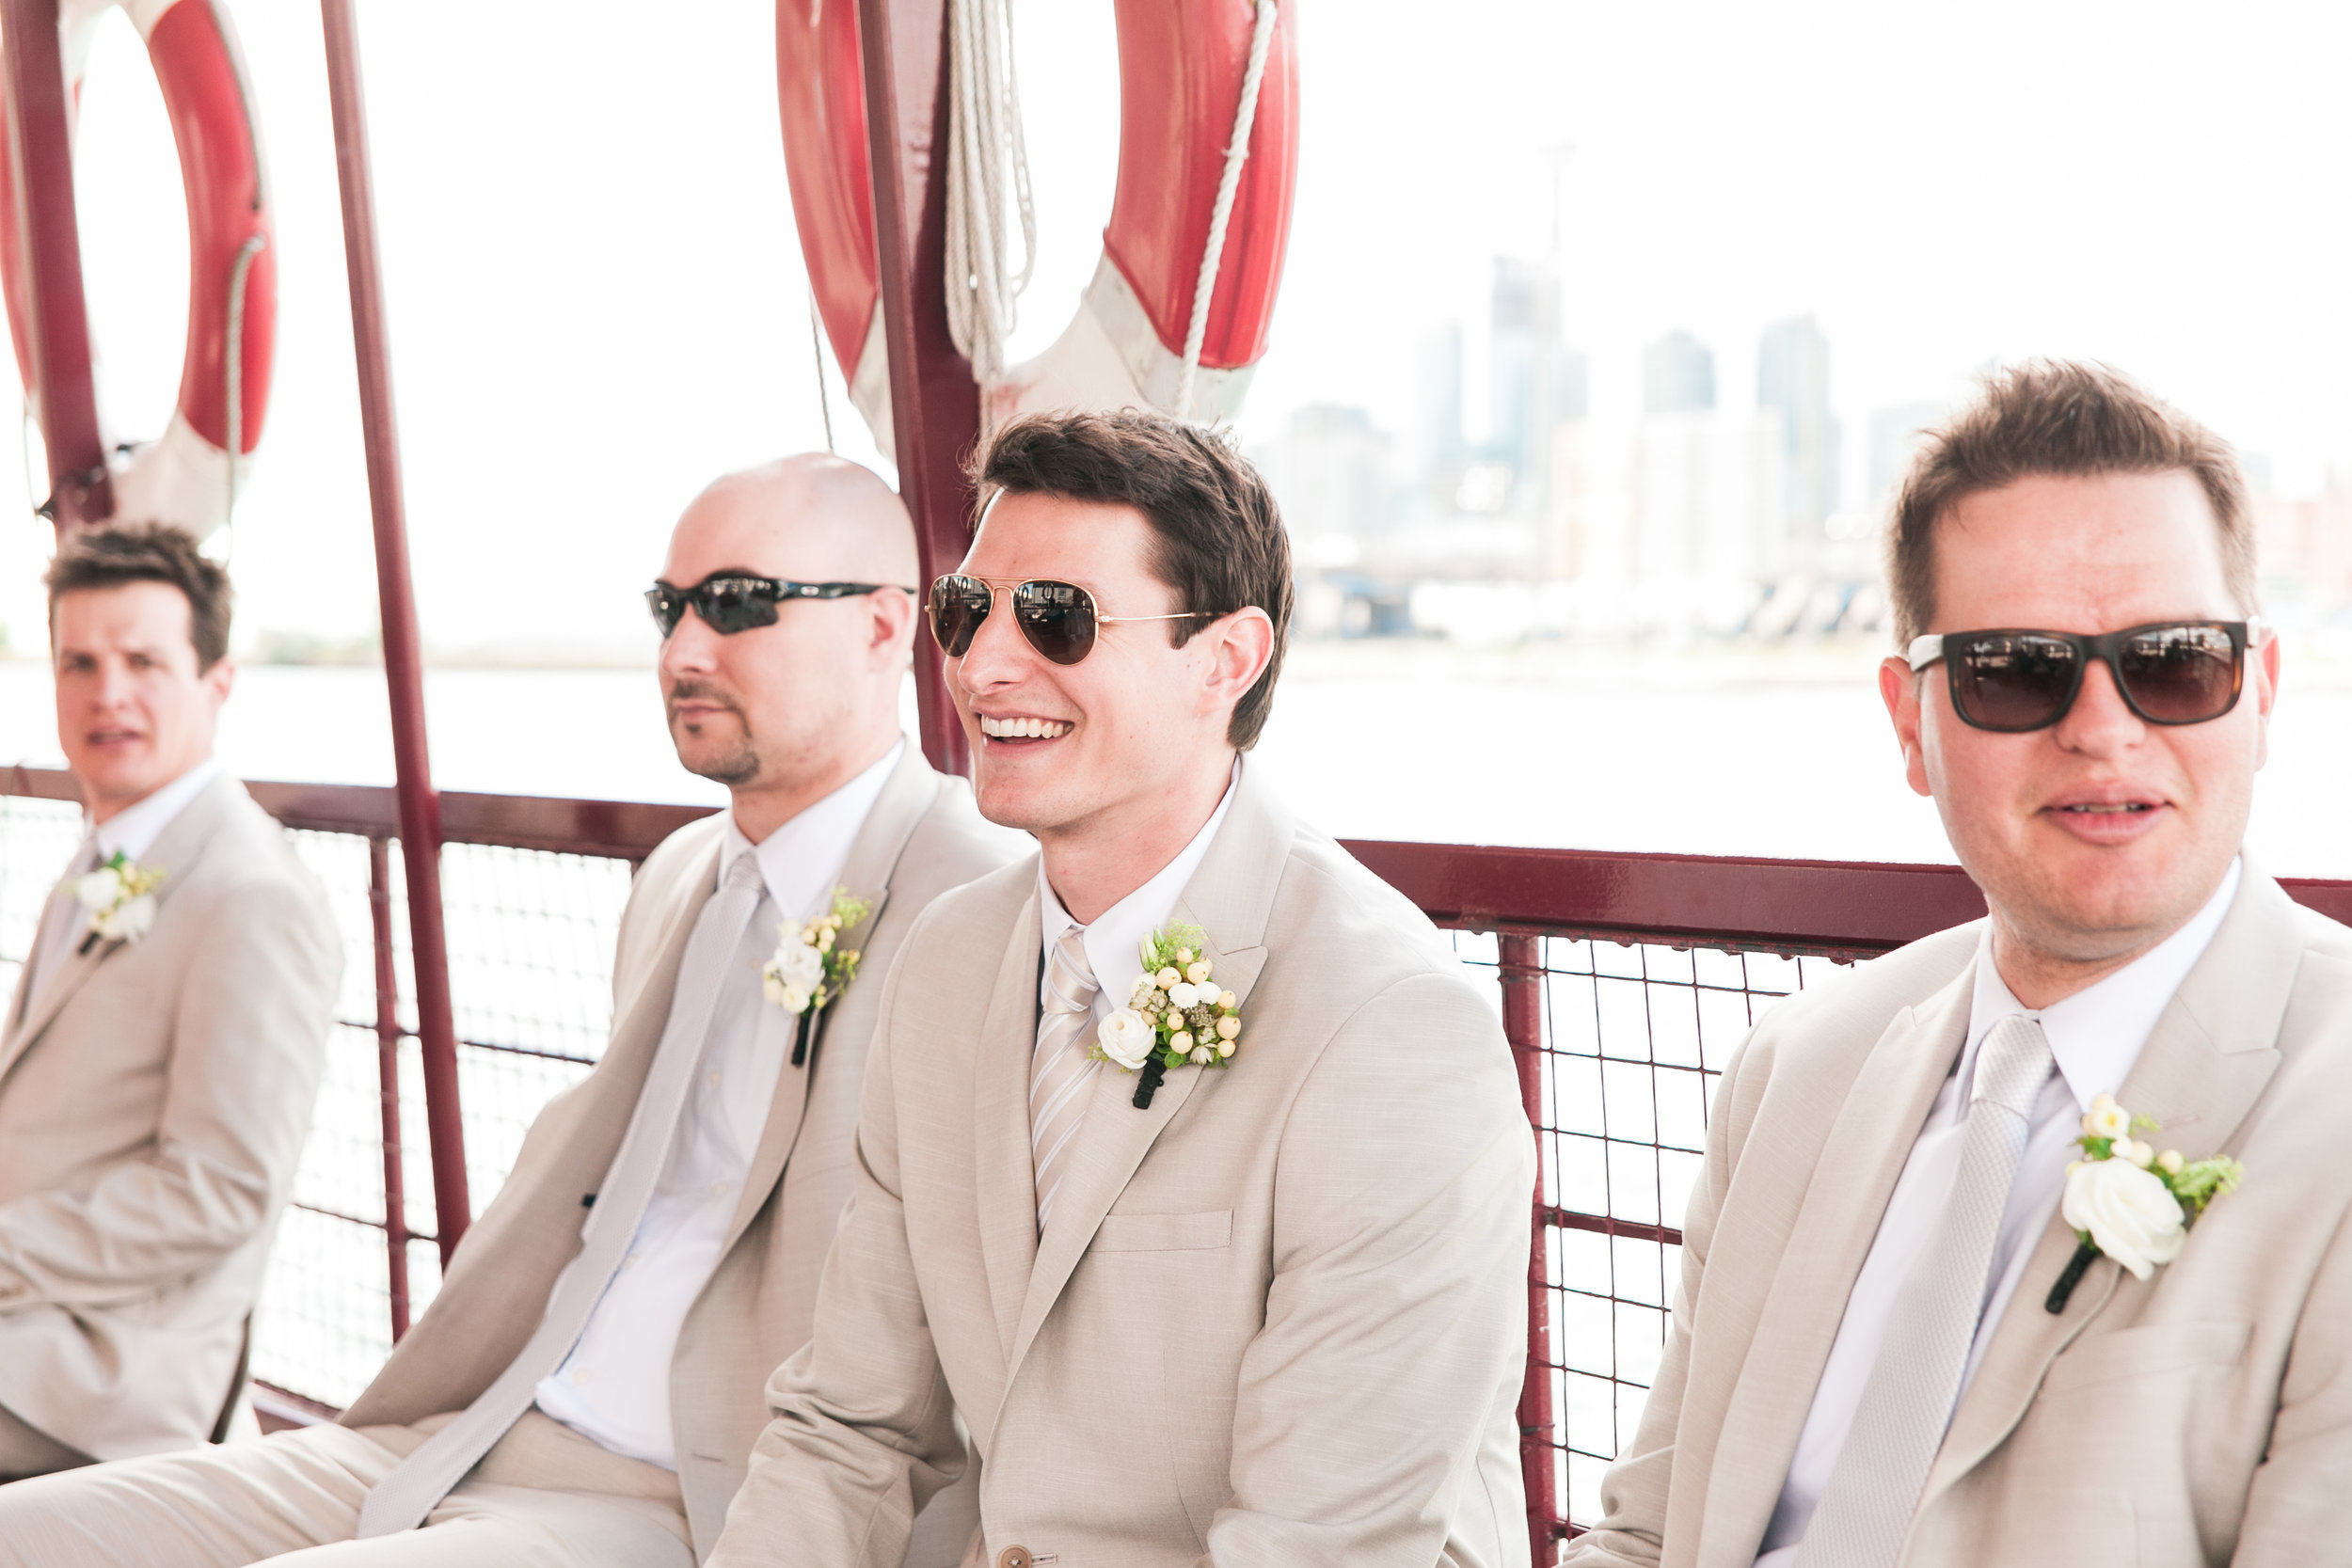 Groom and groomsmen in tan suits on boat